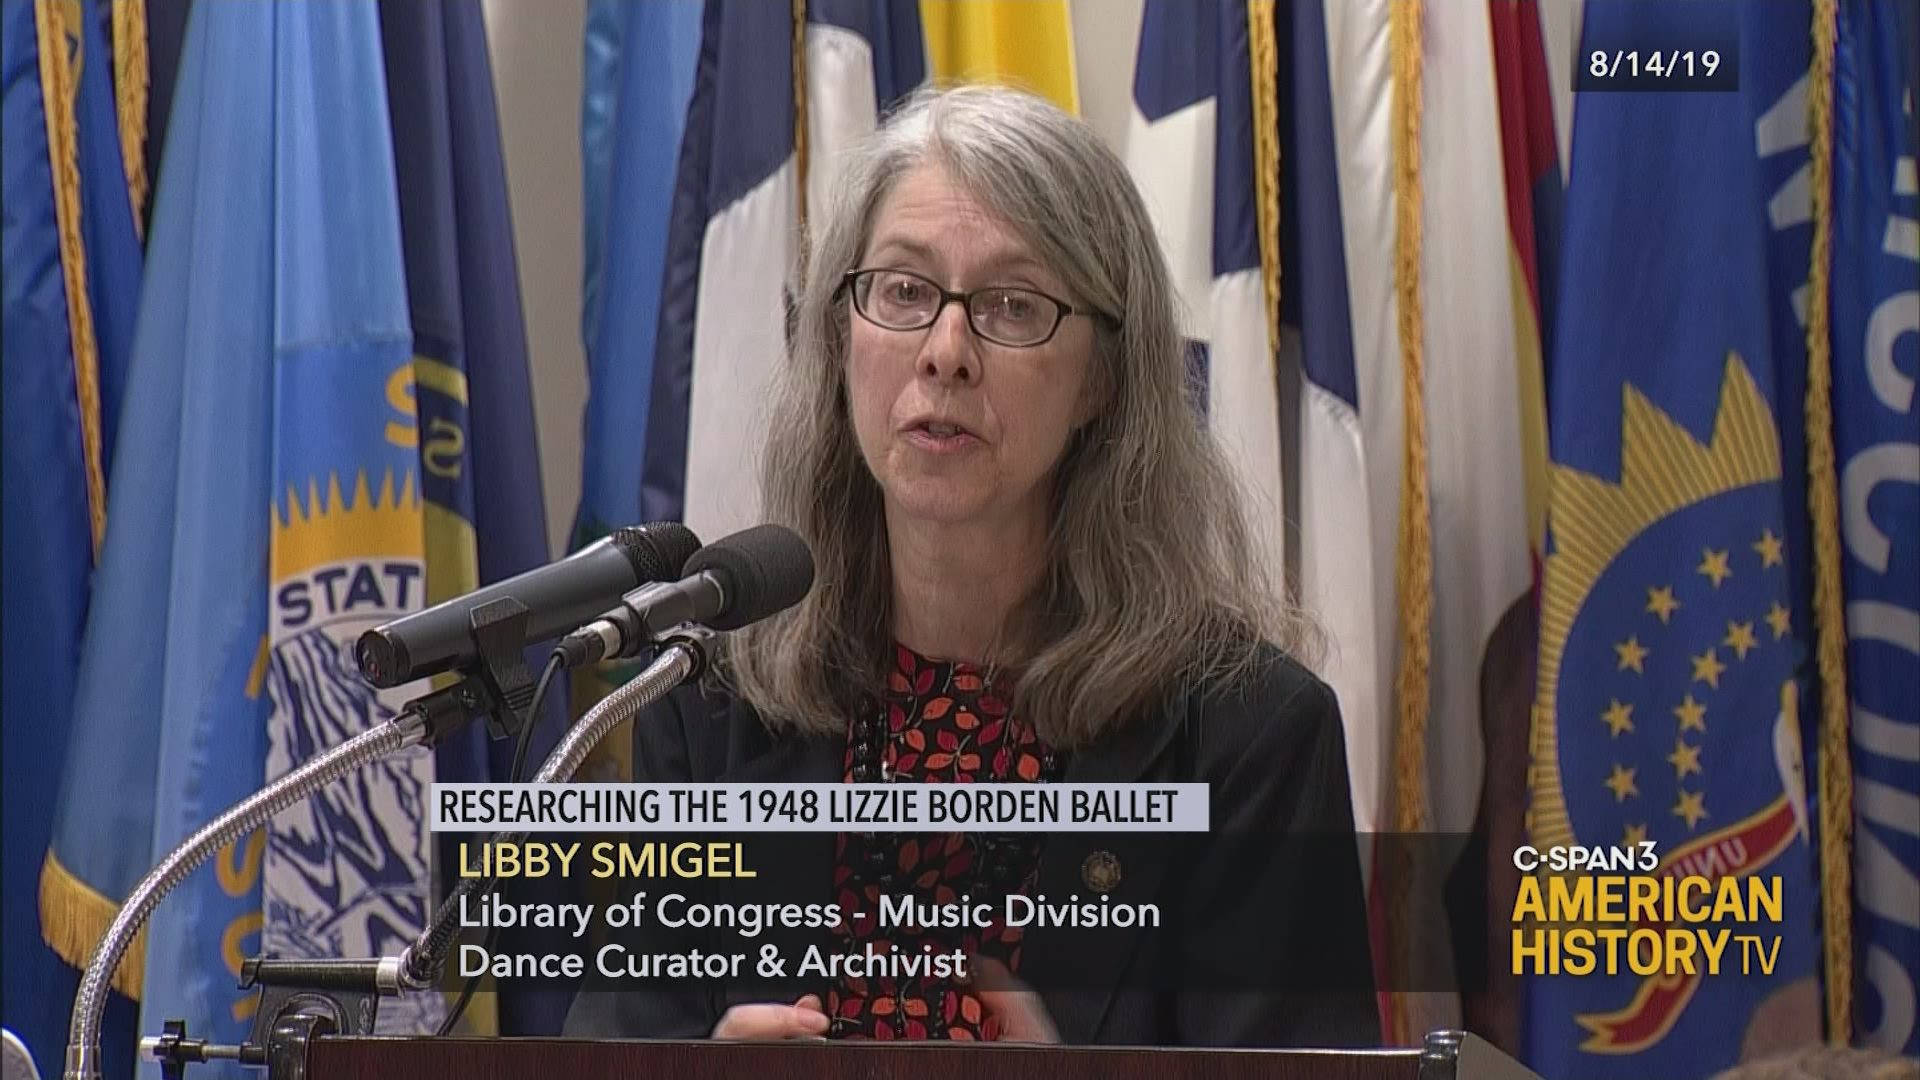 All About Lizzie 2012 researching the 1948 lizzie borden ballet